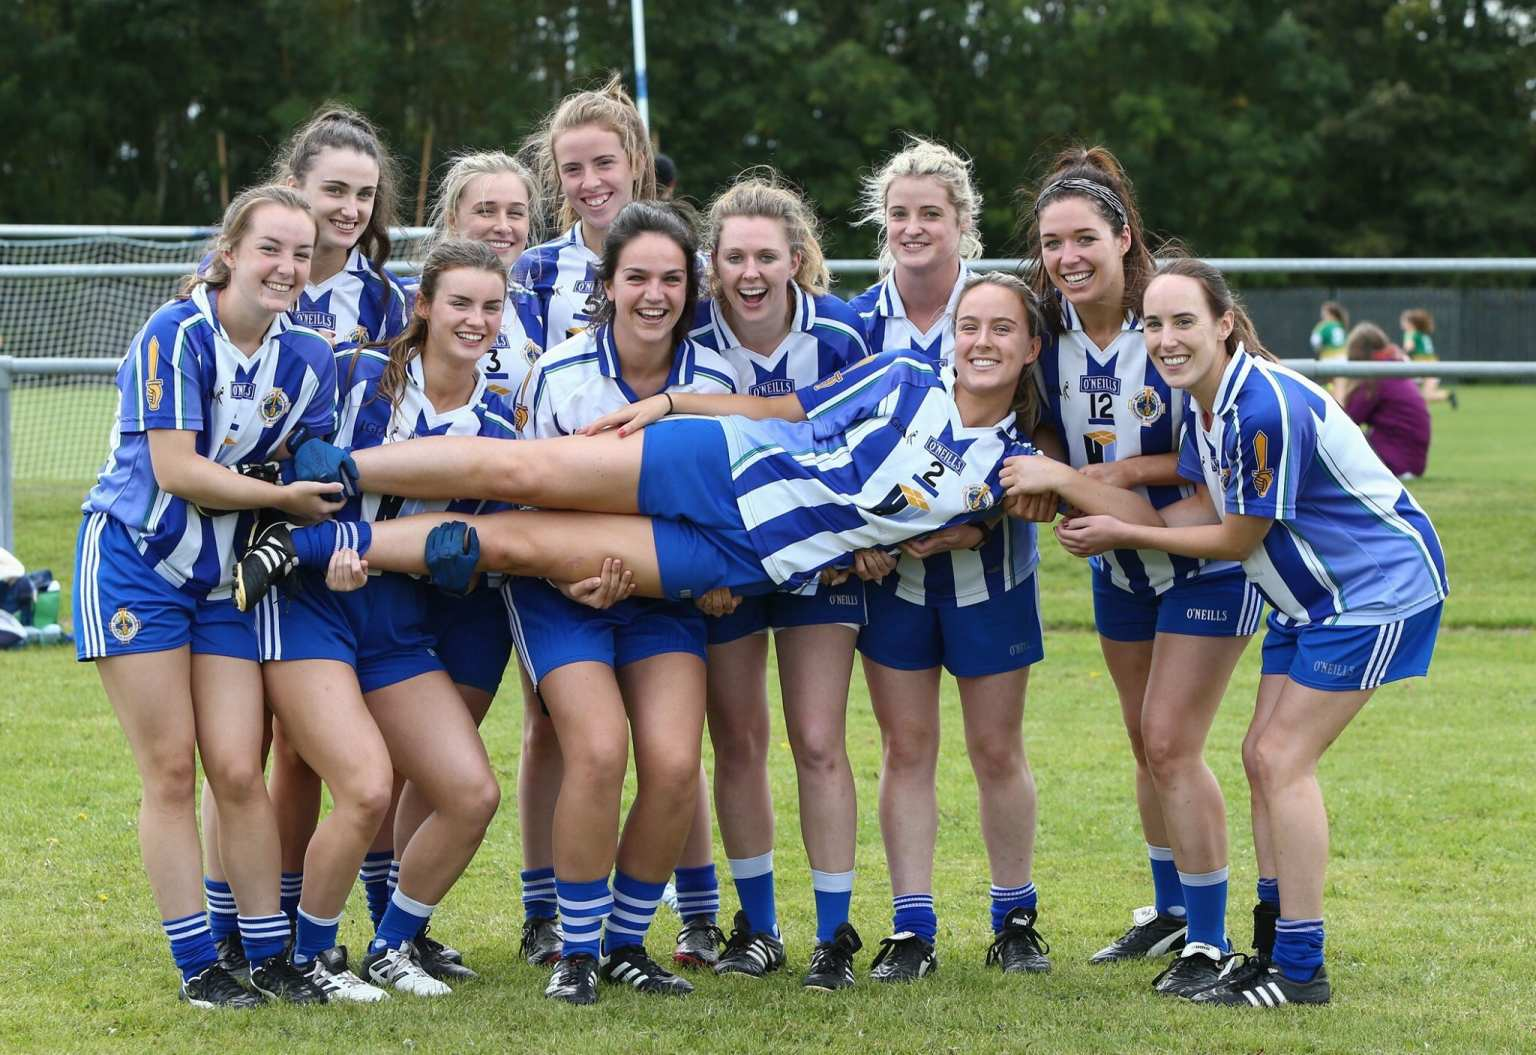 Group of players from Ballyboden St Endas holding one of the teams mates in the air, Ballyboden are among the clubs named to take part in the LGFA All Ireland Club 7s Tournament